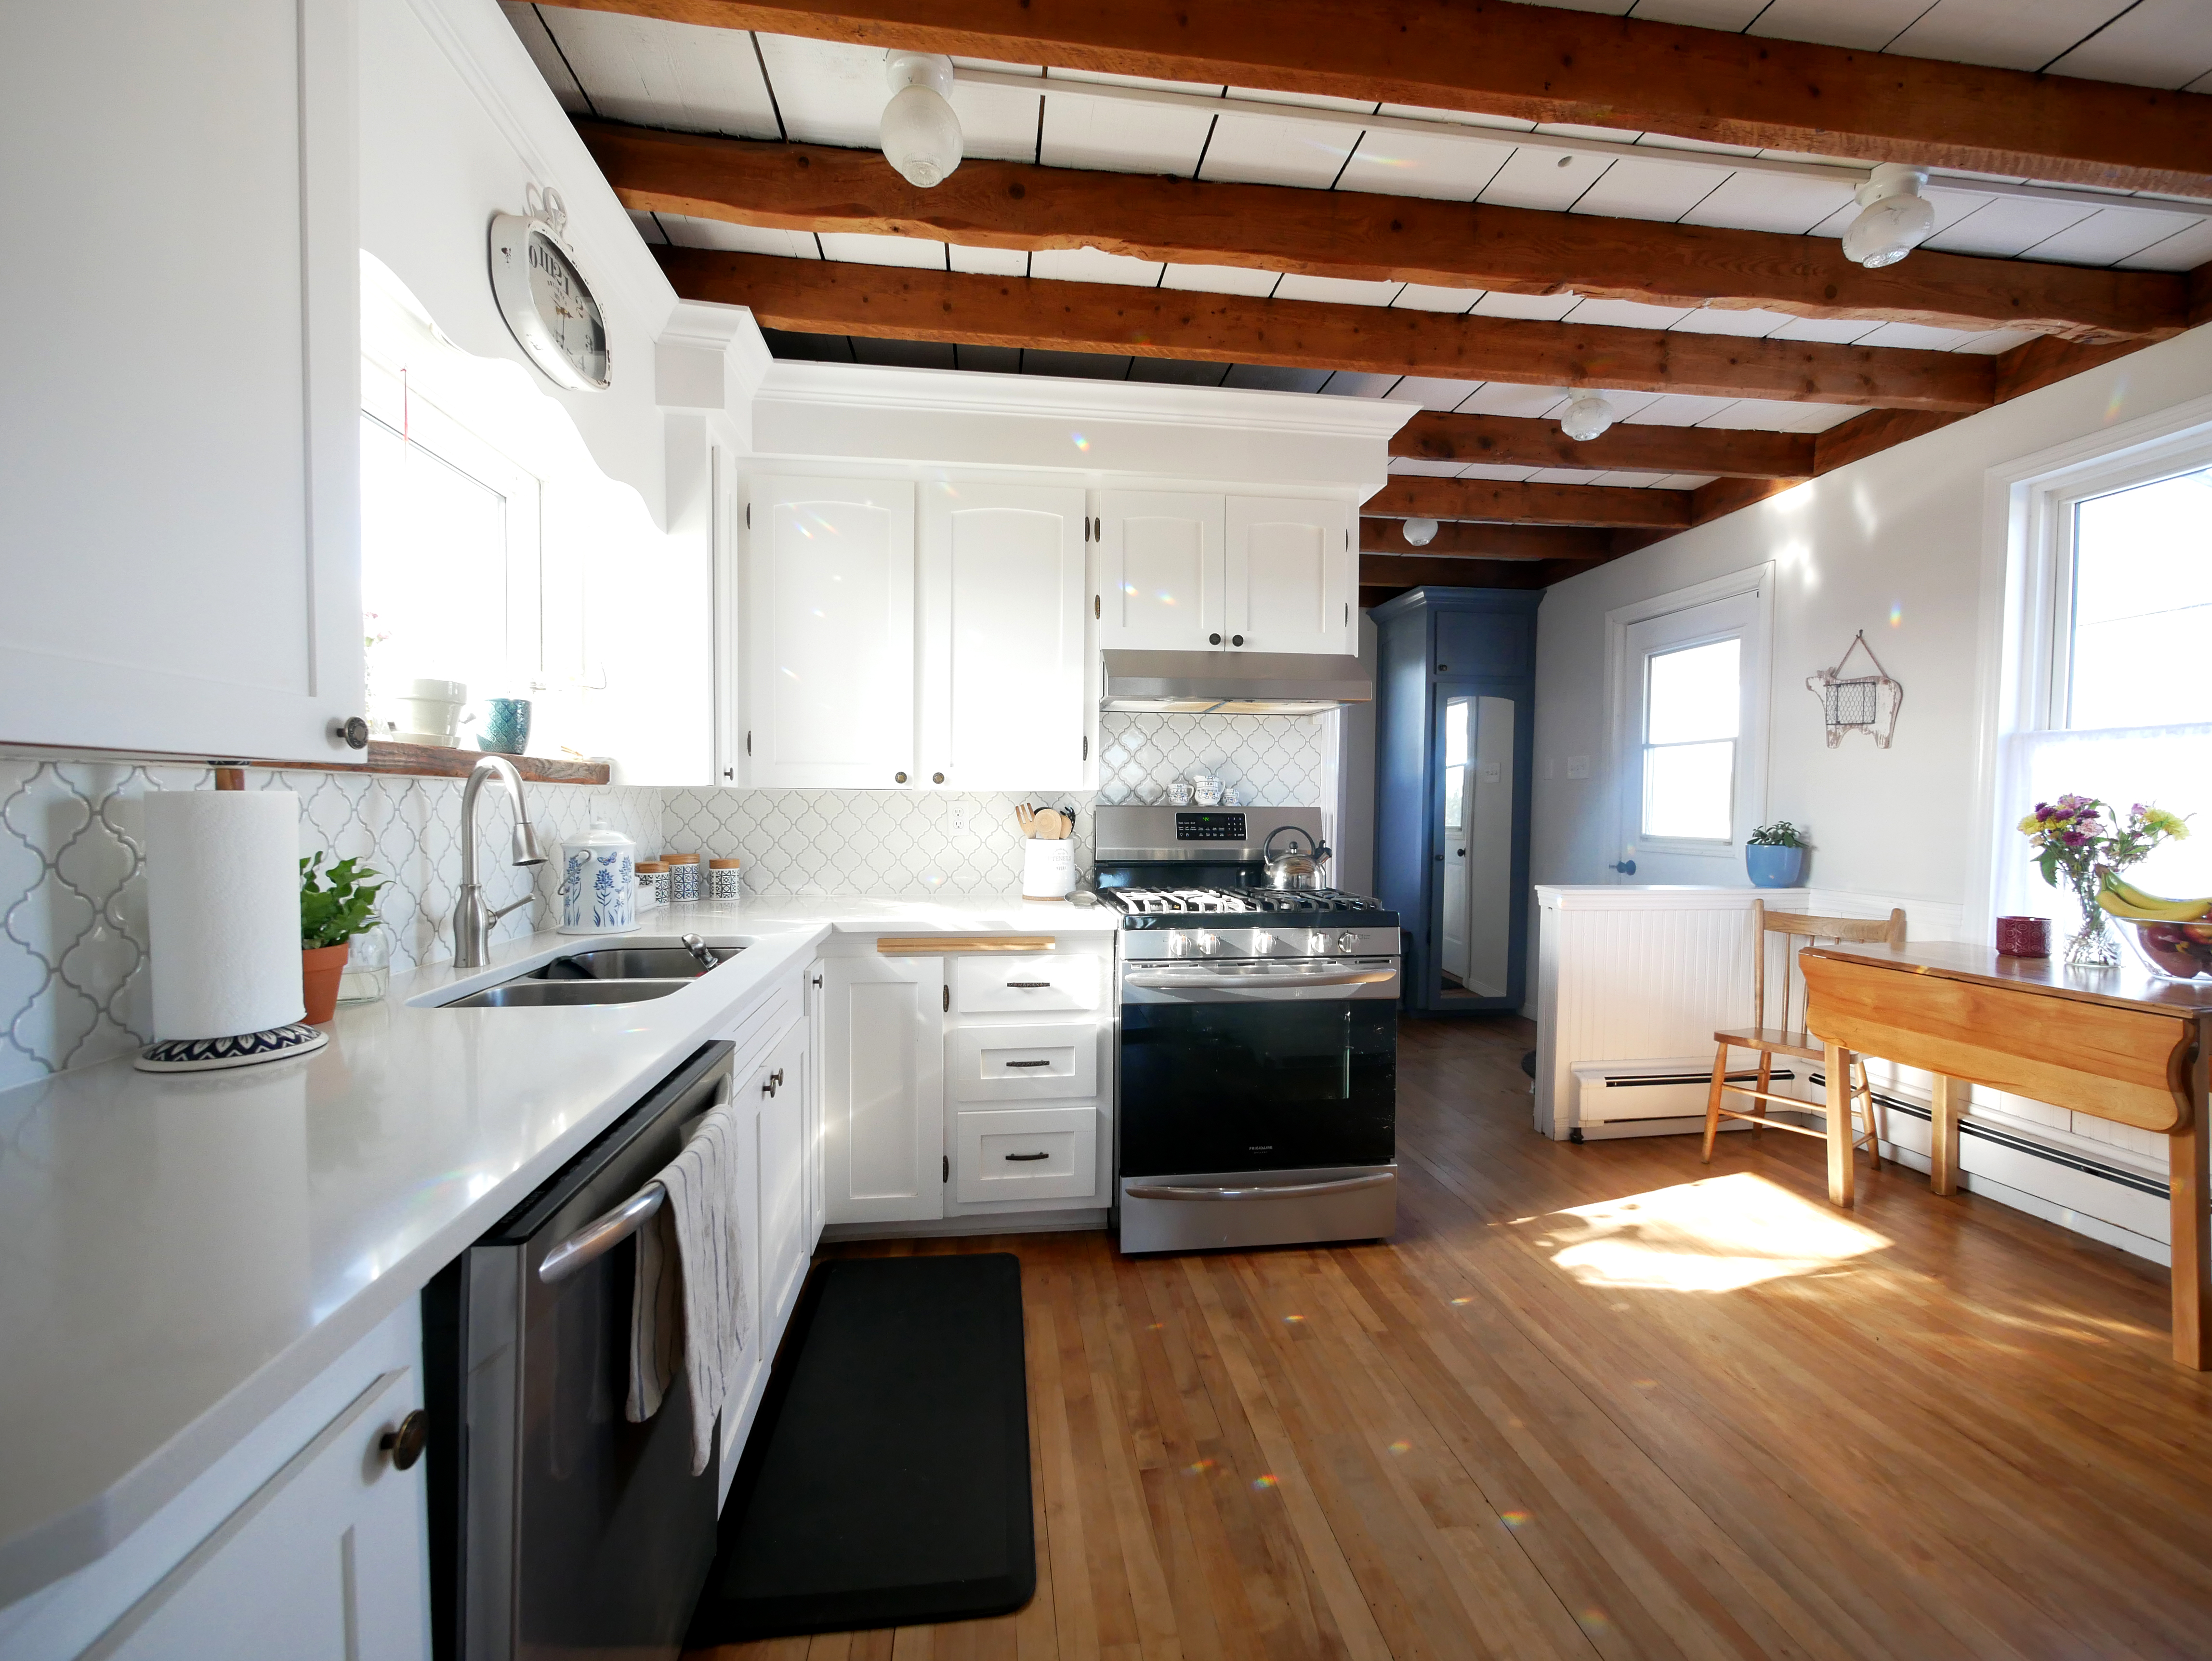 The Best Home Renovation Show Isn T On Hgtv It S On Youtube